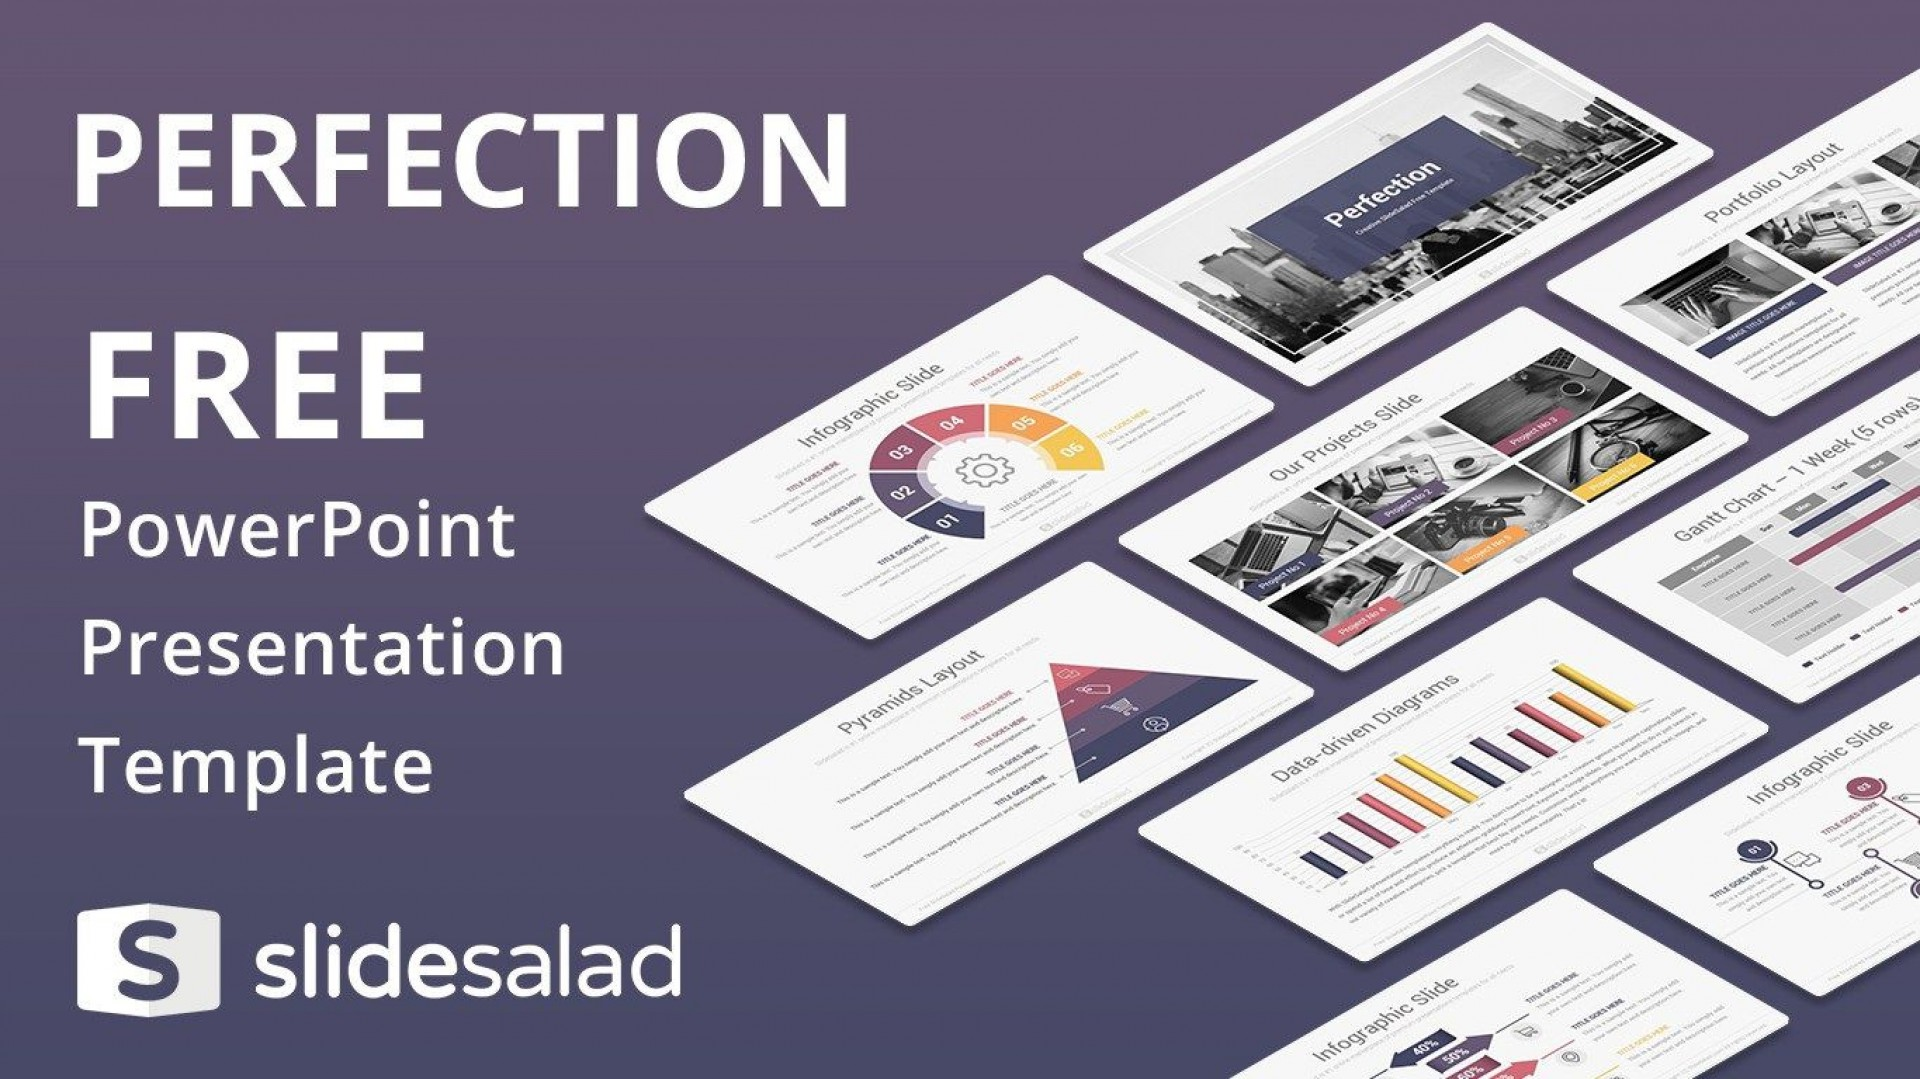 000 Shocking Powerpoint Presentation Format Free Download Highest Quality  Influencer Template Company Ppt Sample1920